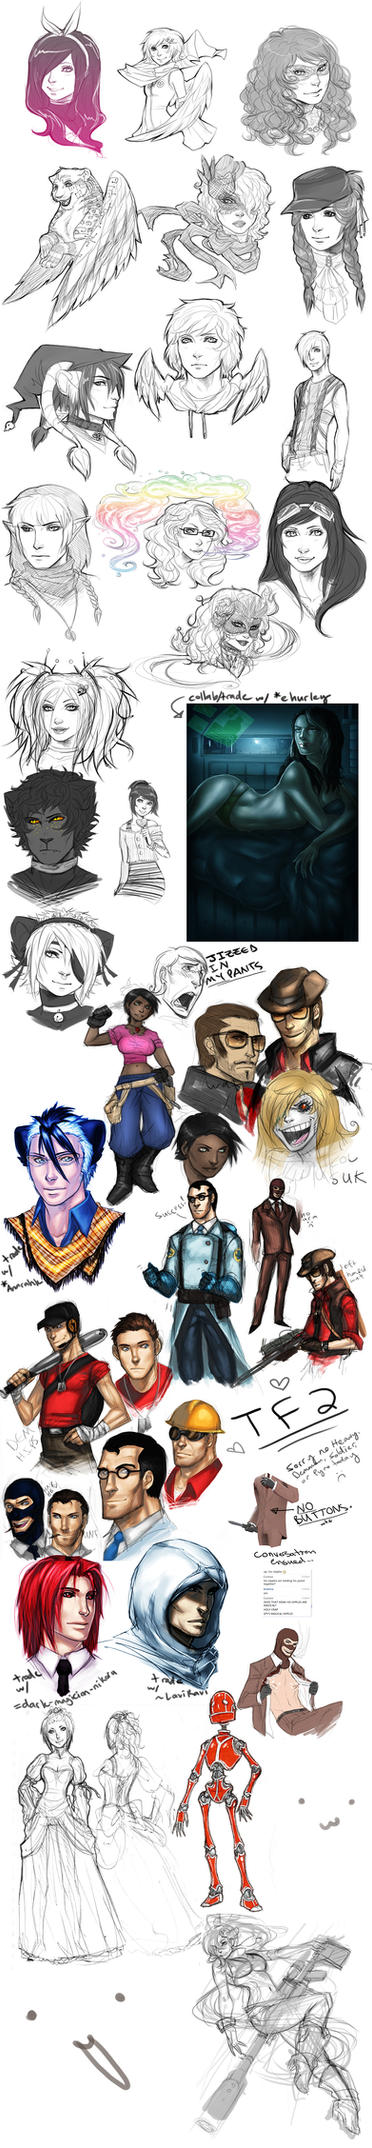 TF2 + trades SKETCH DUMP 2 by Pirate-Cashoo